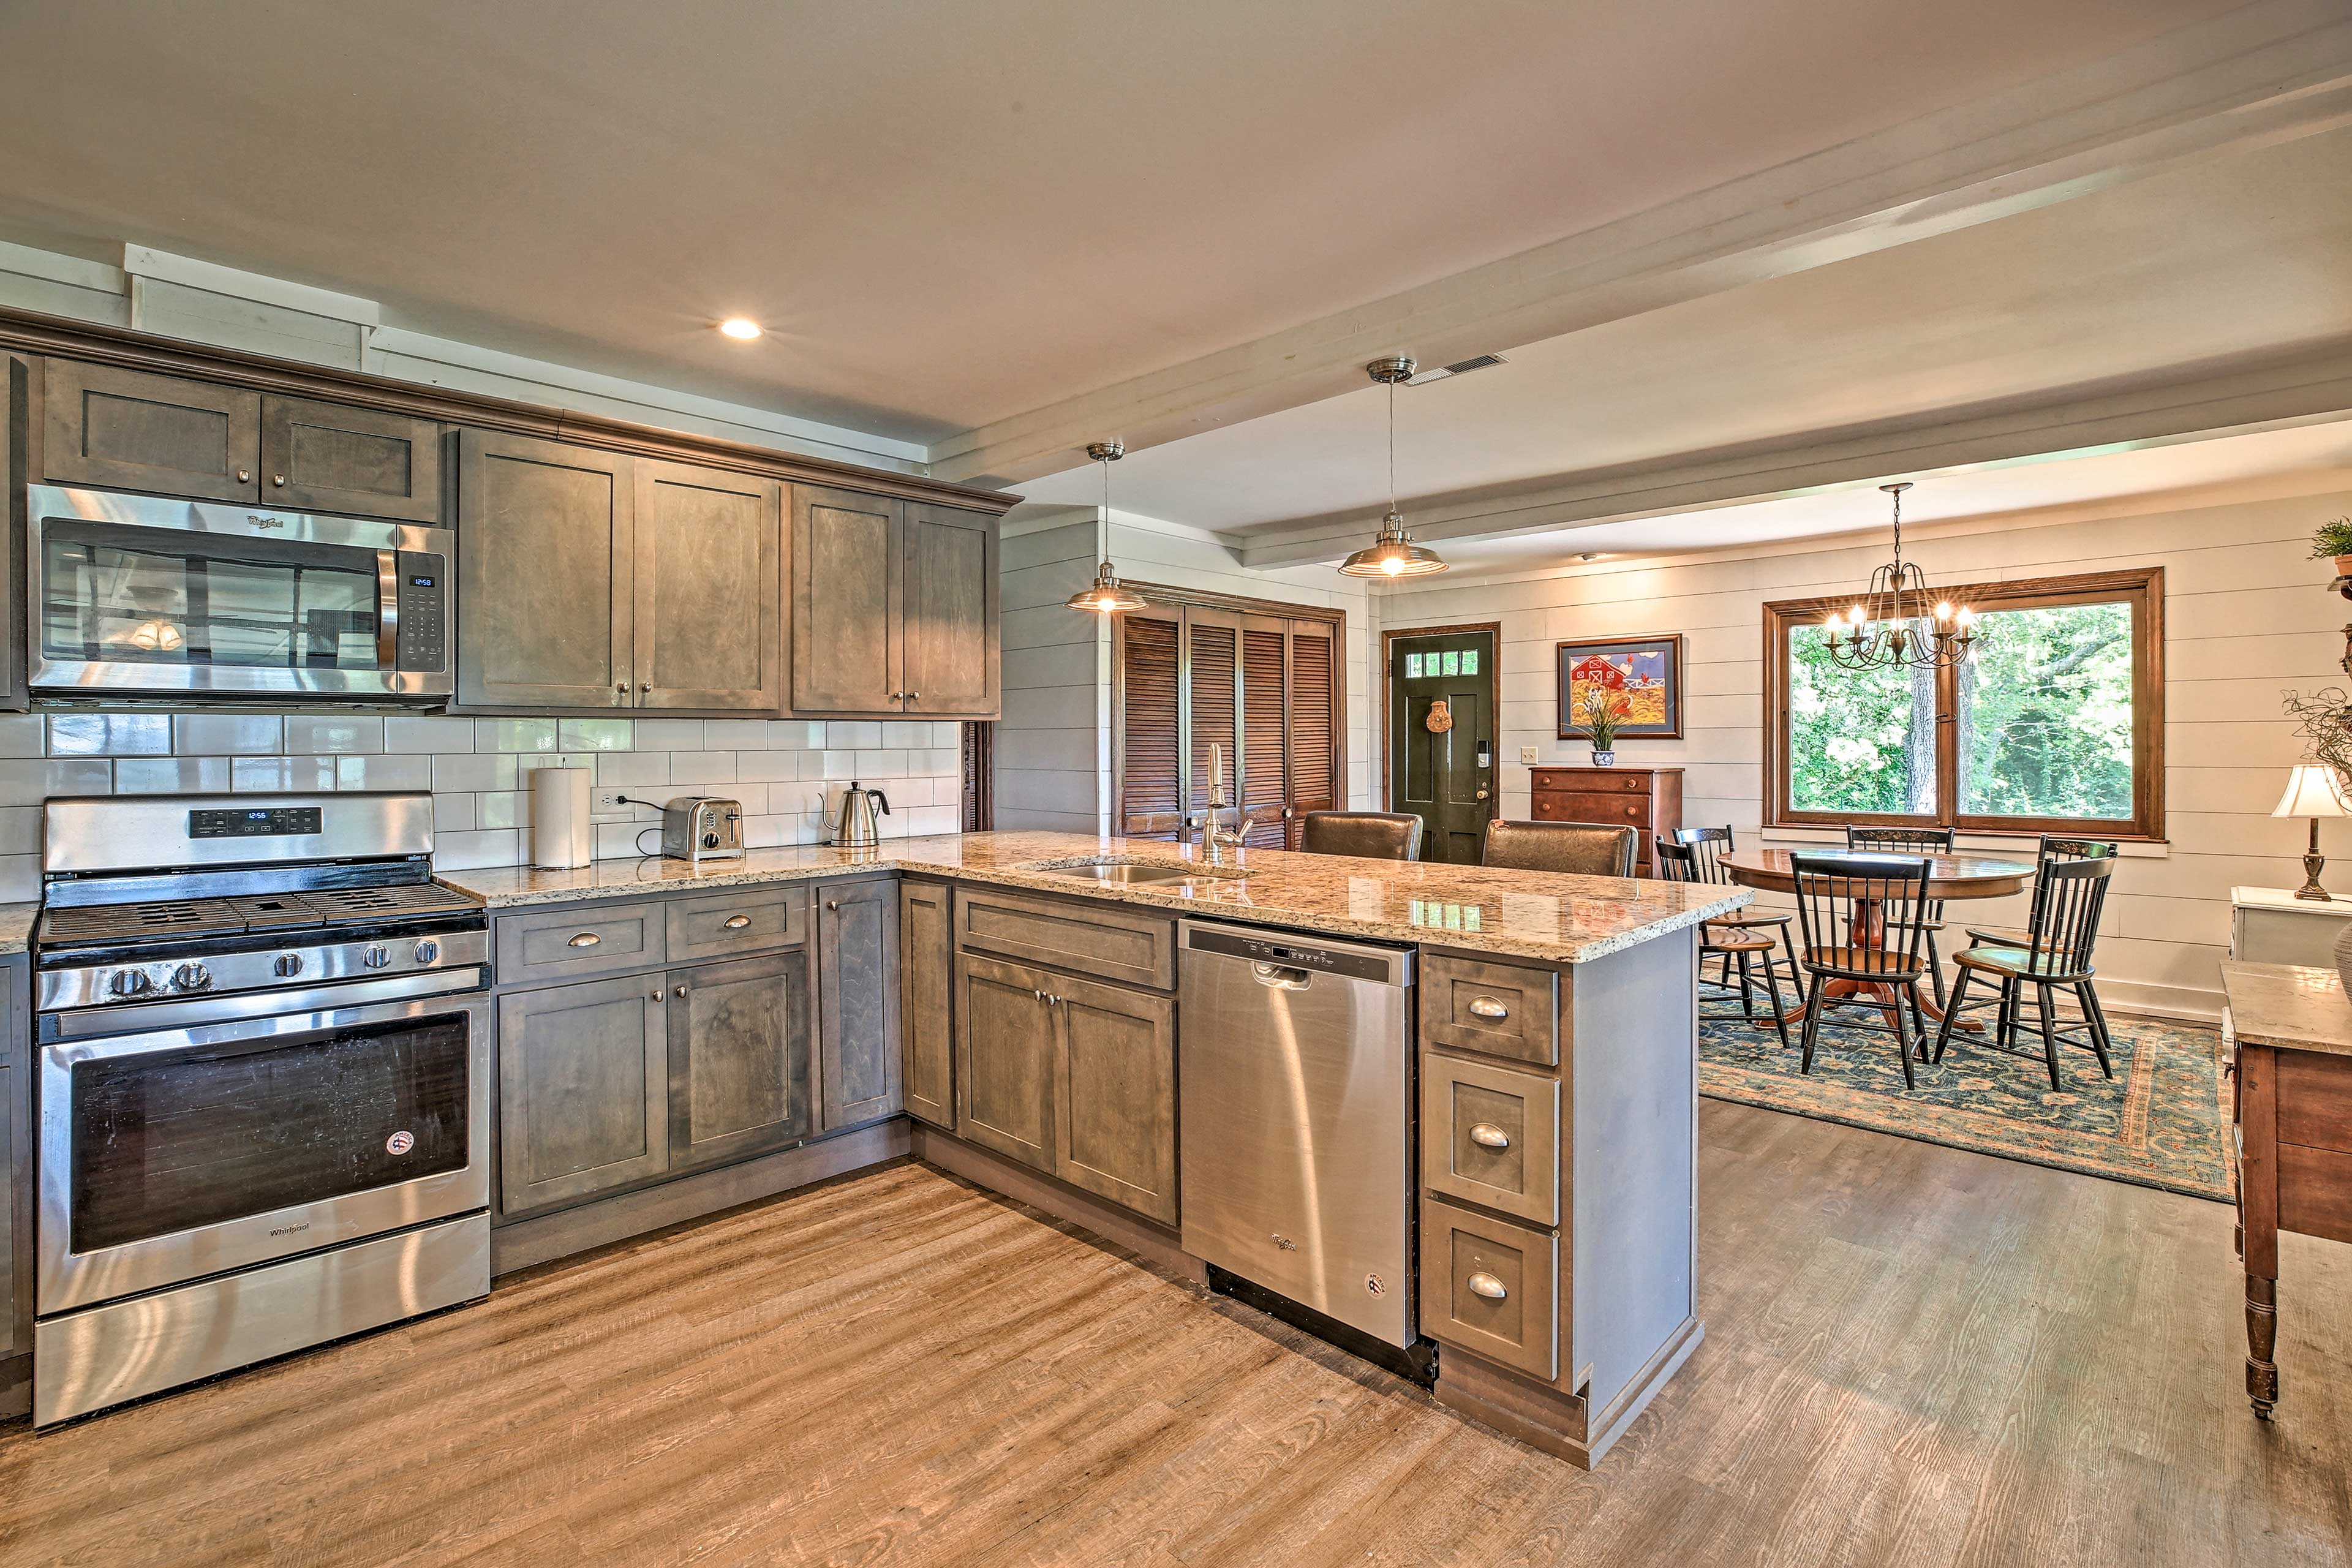 The fully equipped kitchen makes it easy to prepare delicious meals.